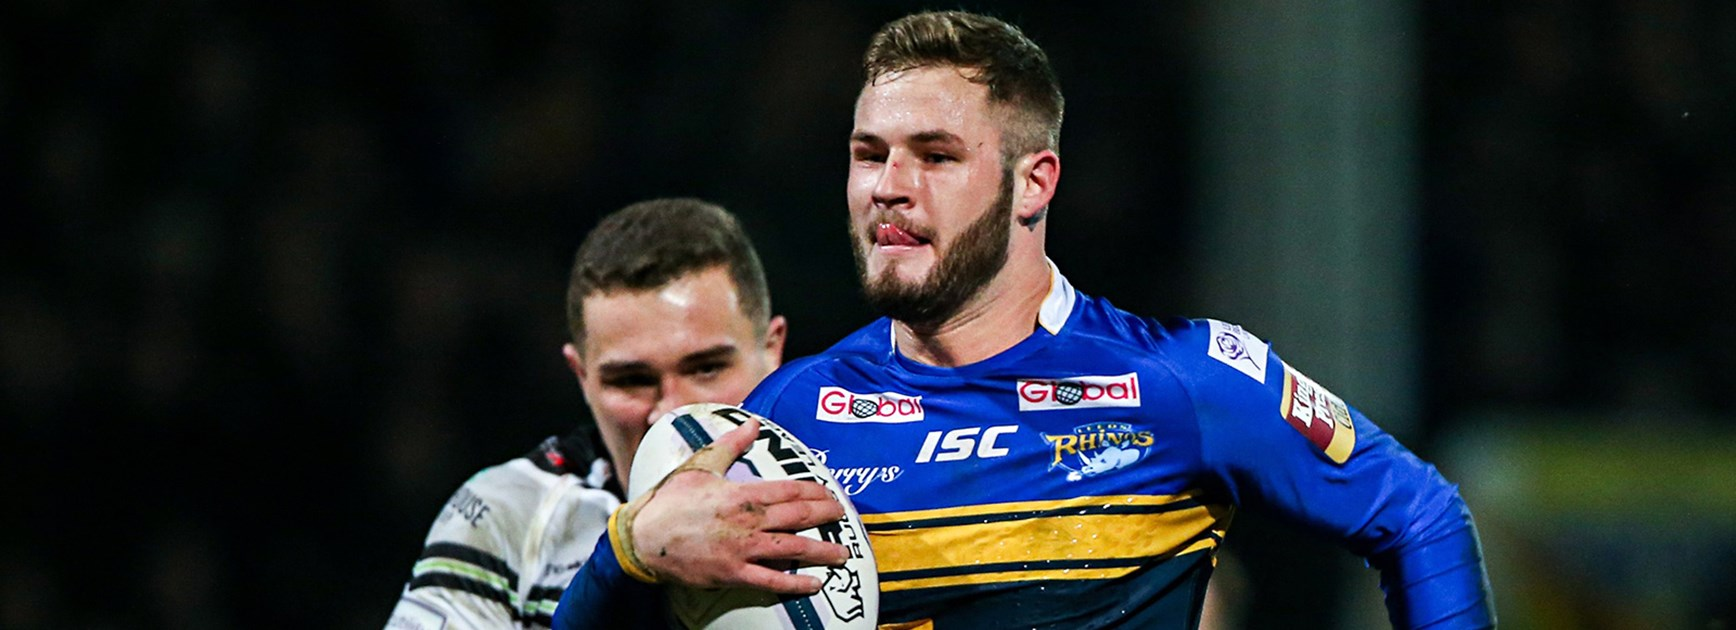 England fullback Zak Hardaker was named the Super League's Man of Steel when playing for Leeds in 2015.